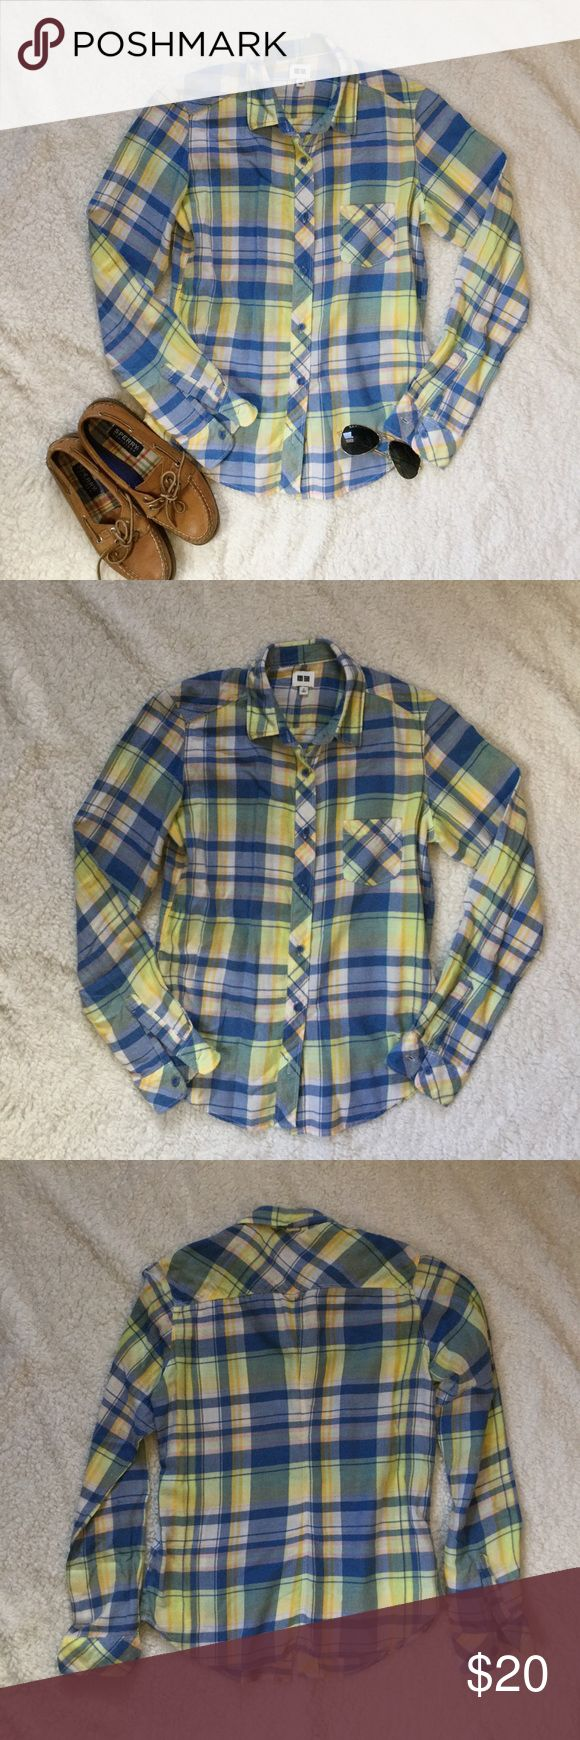 Uniqlo Plaid Flannel Uniqlo yellow and blue plaid flannel. Pink and cream accents. Size XS but runs small   Condition: Gently worn.   ◆If you'd like more pics or have questions, ask! 🚫NO TRADES🚫 Uniqlo Tops Button Down Shirts